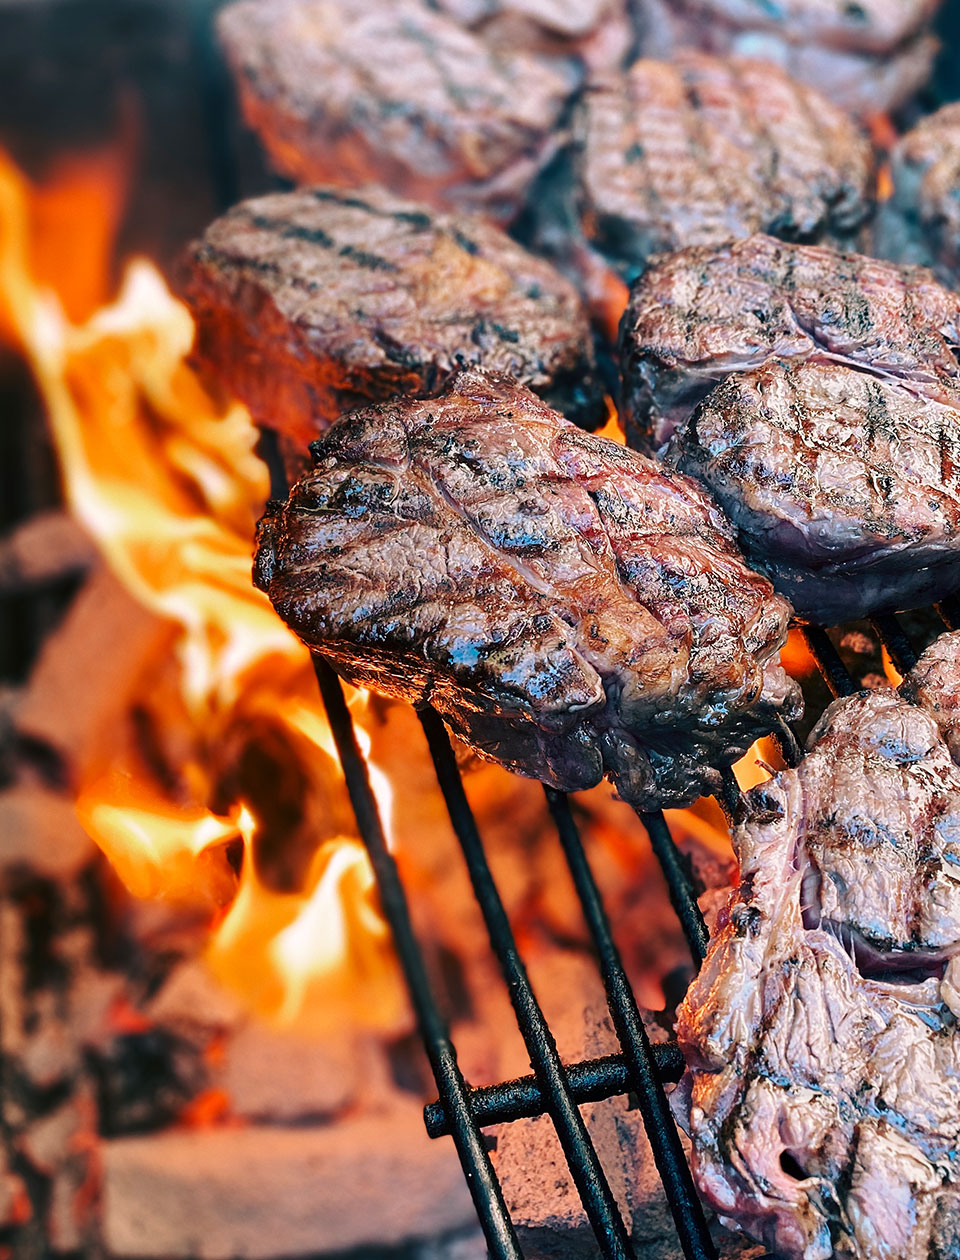 mitch-barbecue-catering-grill-steaks